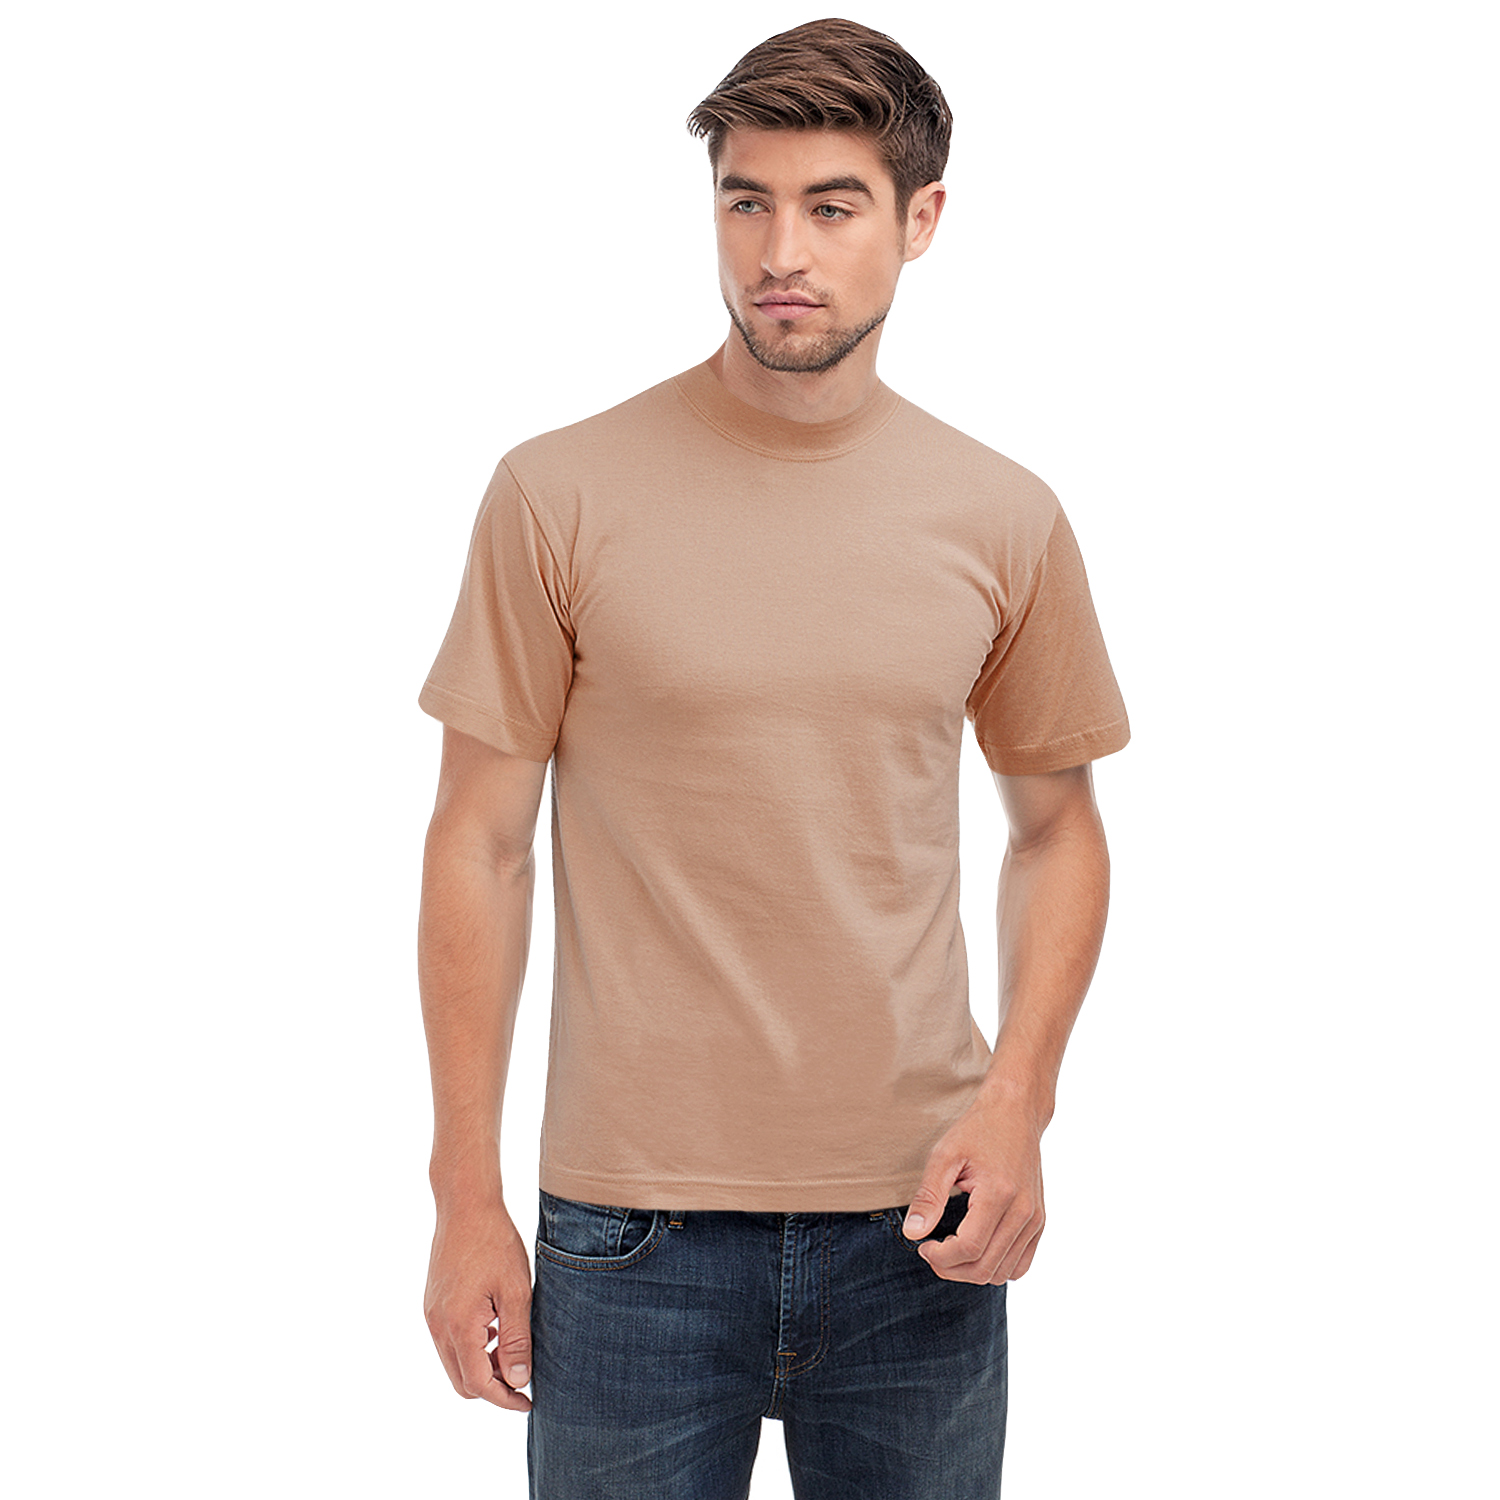 Hanes heavy t mens short sleeve crew neck casual cotton t for Mens crew neck tee shirts